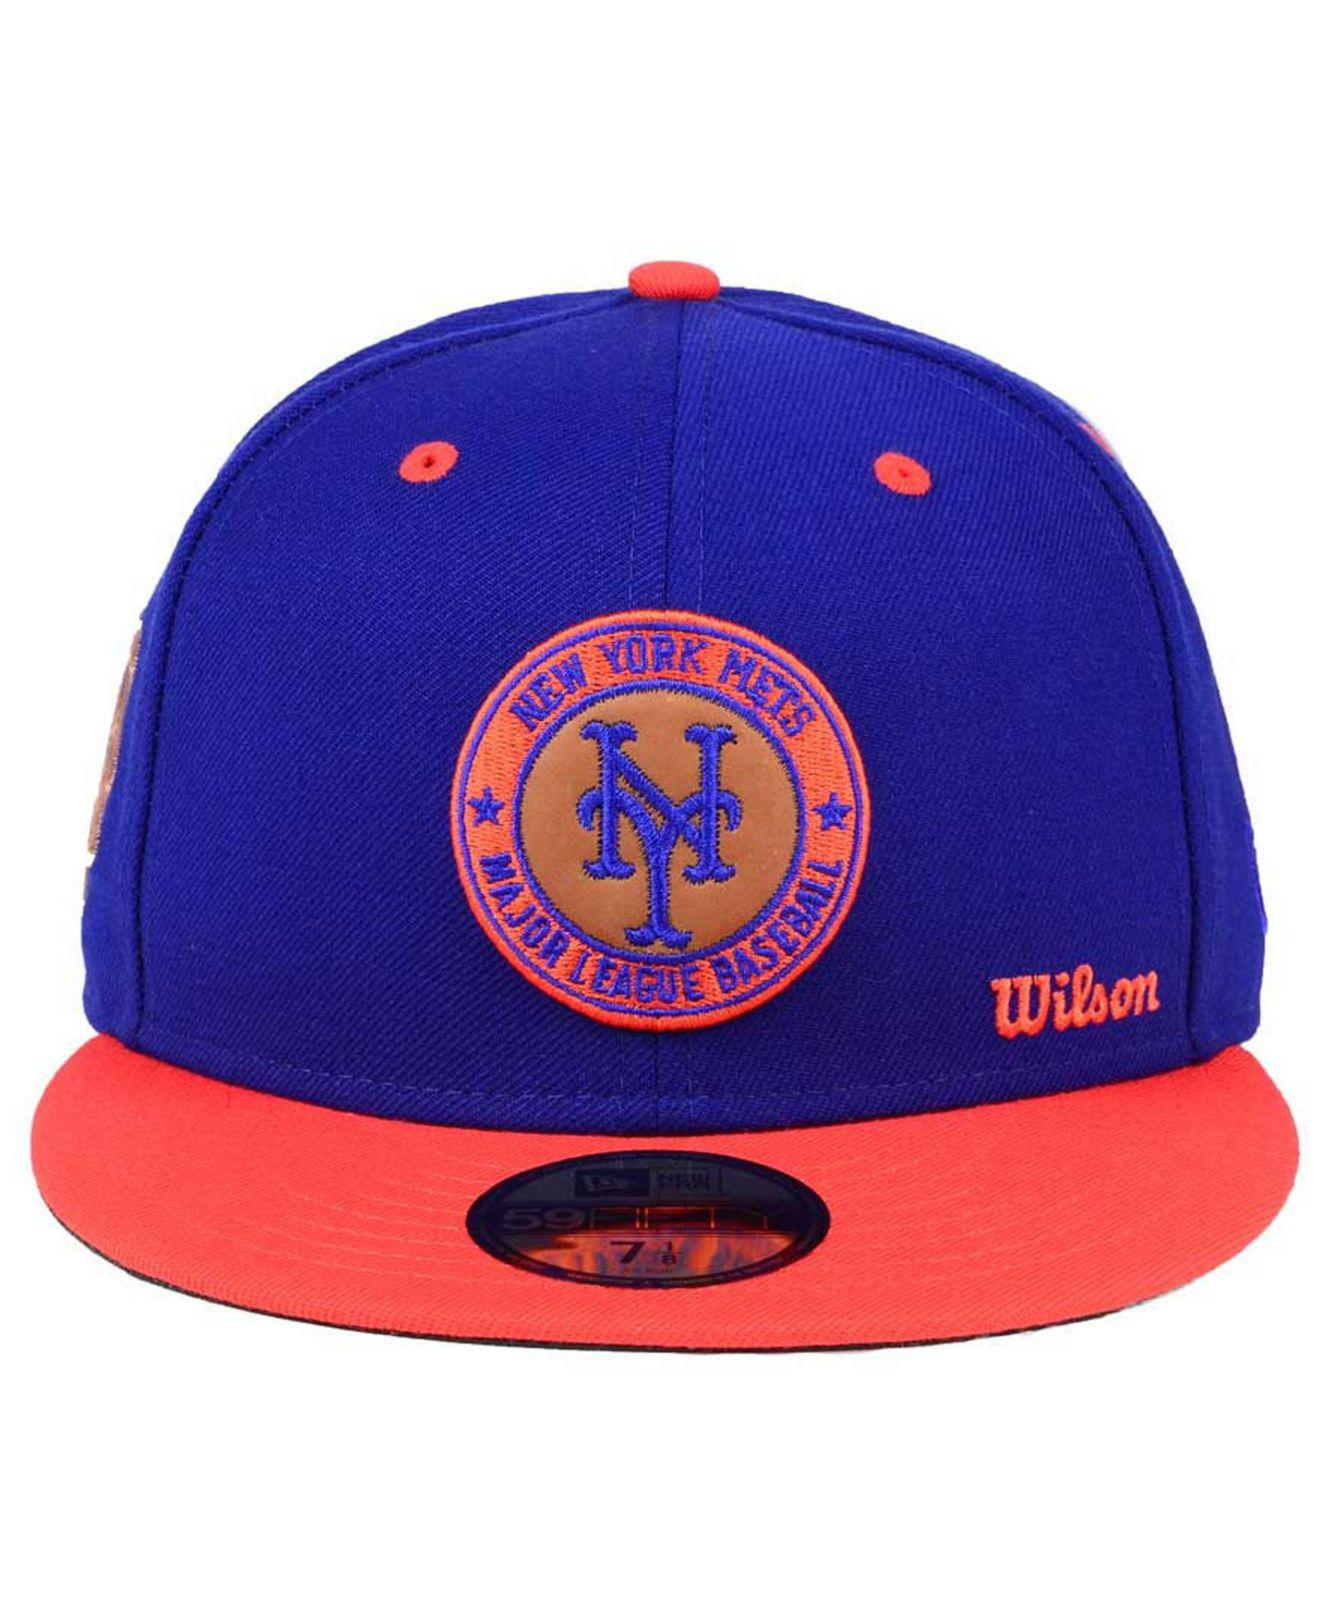 low priced 08aae af00d ... usa lyst ktz x wilson circle patch 59fifty cap in blue for men save  31.42857142857143 eaff7